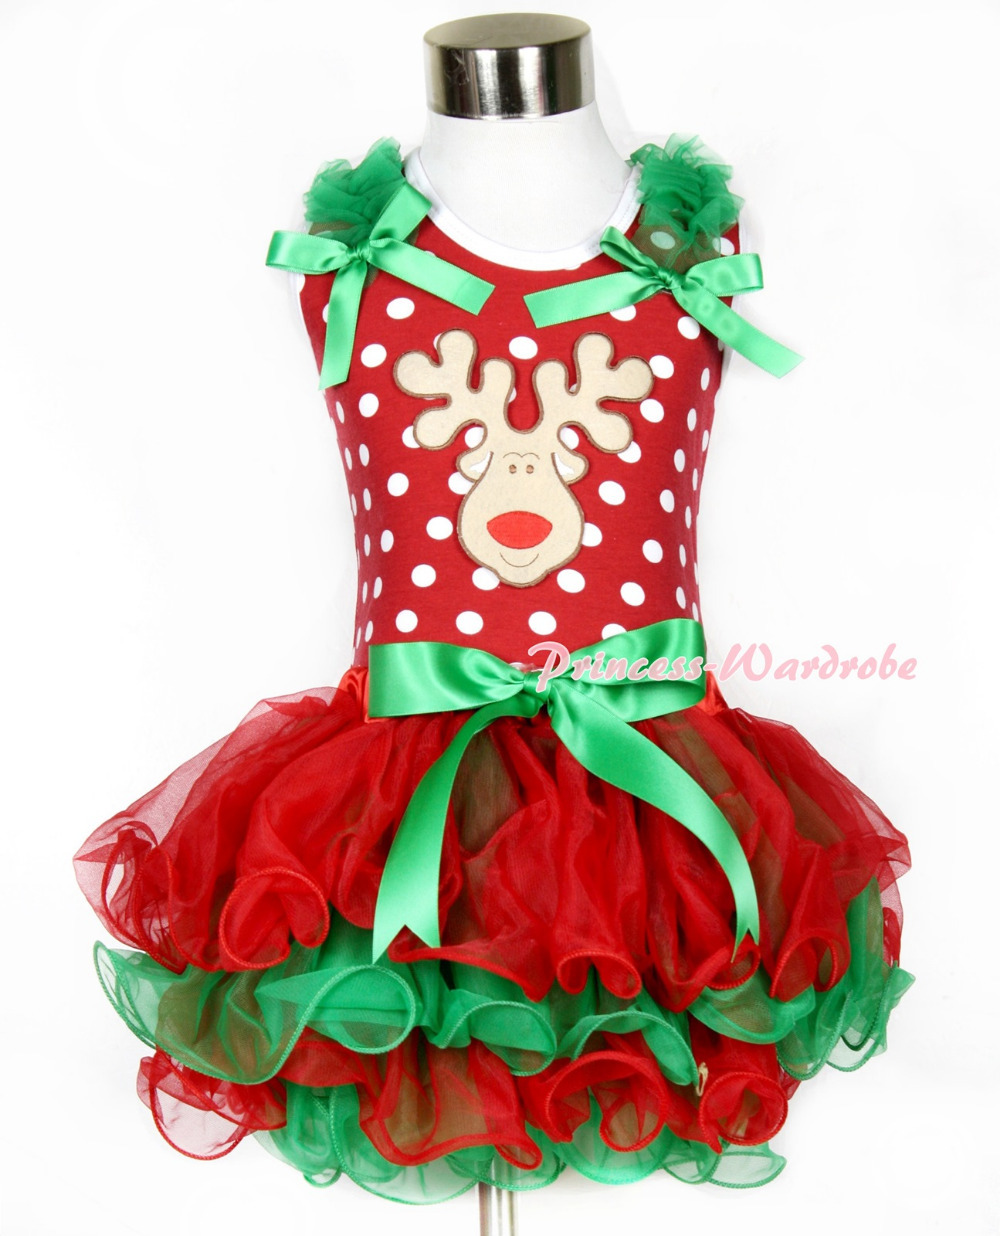 Xmas Minnie Dots Tank Top With Kelly Green Ruffles Kelly Green Bow Christmas Reindeer Bow Red Green Petal Pettiskirt MAMH092 minnie dots 4th birthday number minnie print tank top with white ruffles